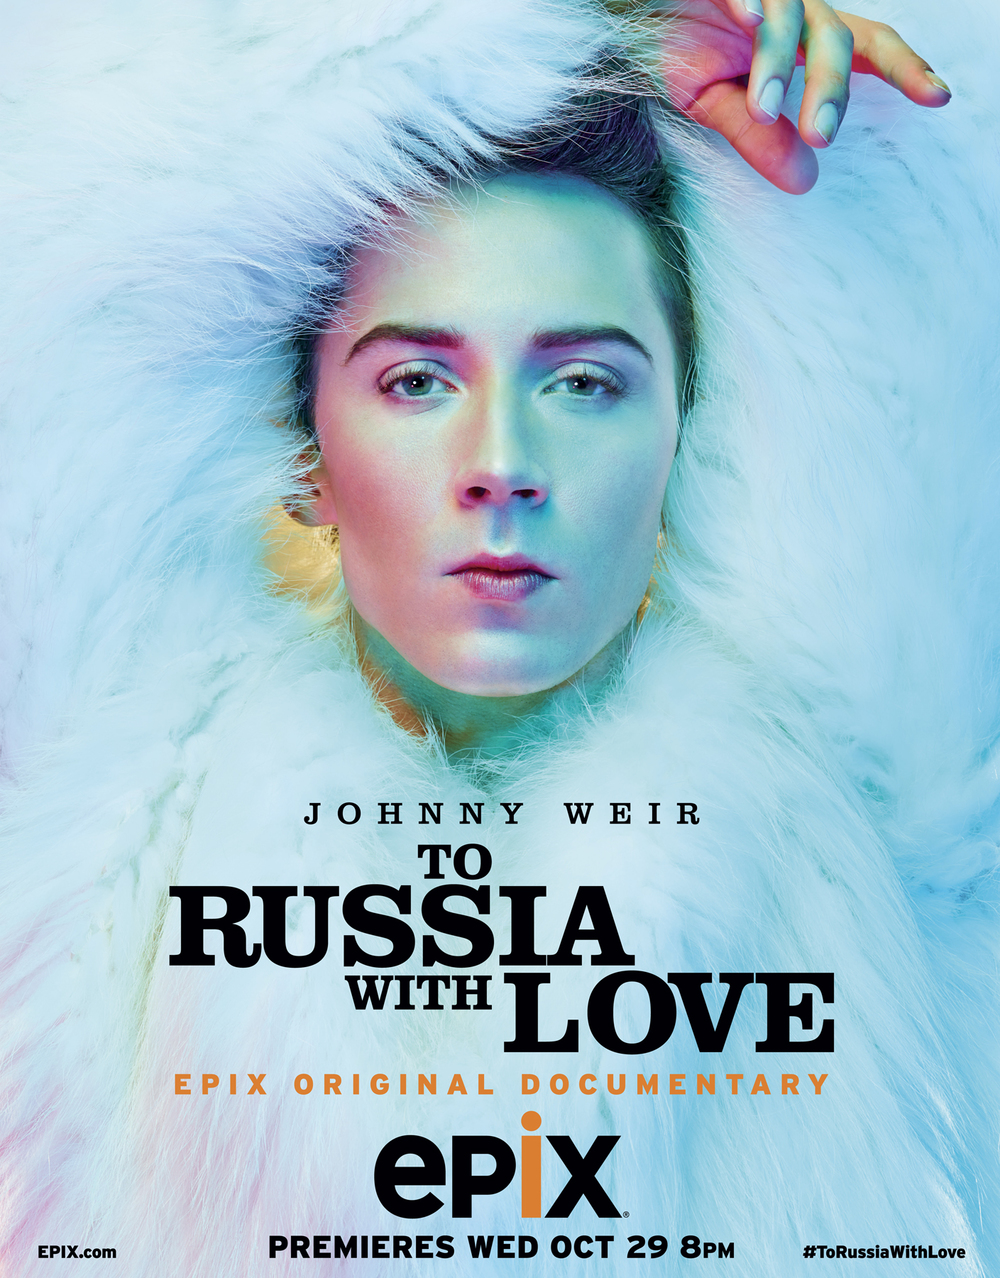 Johnny Weir To Russia With Love Poster